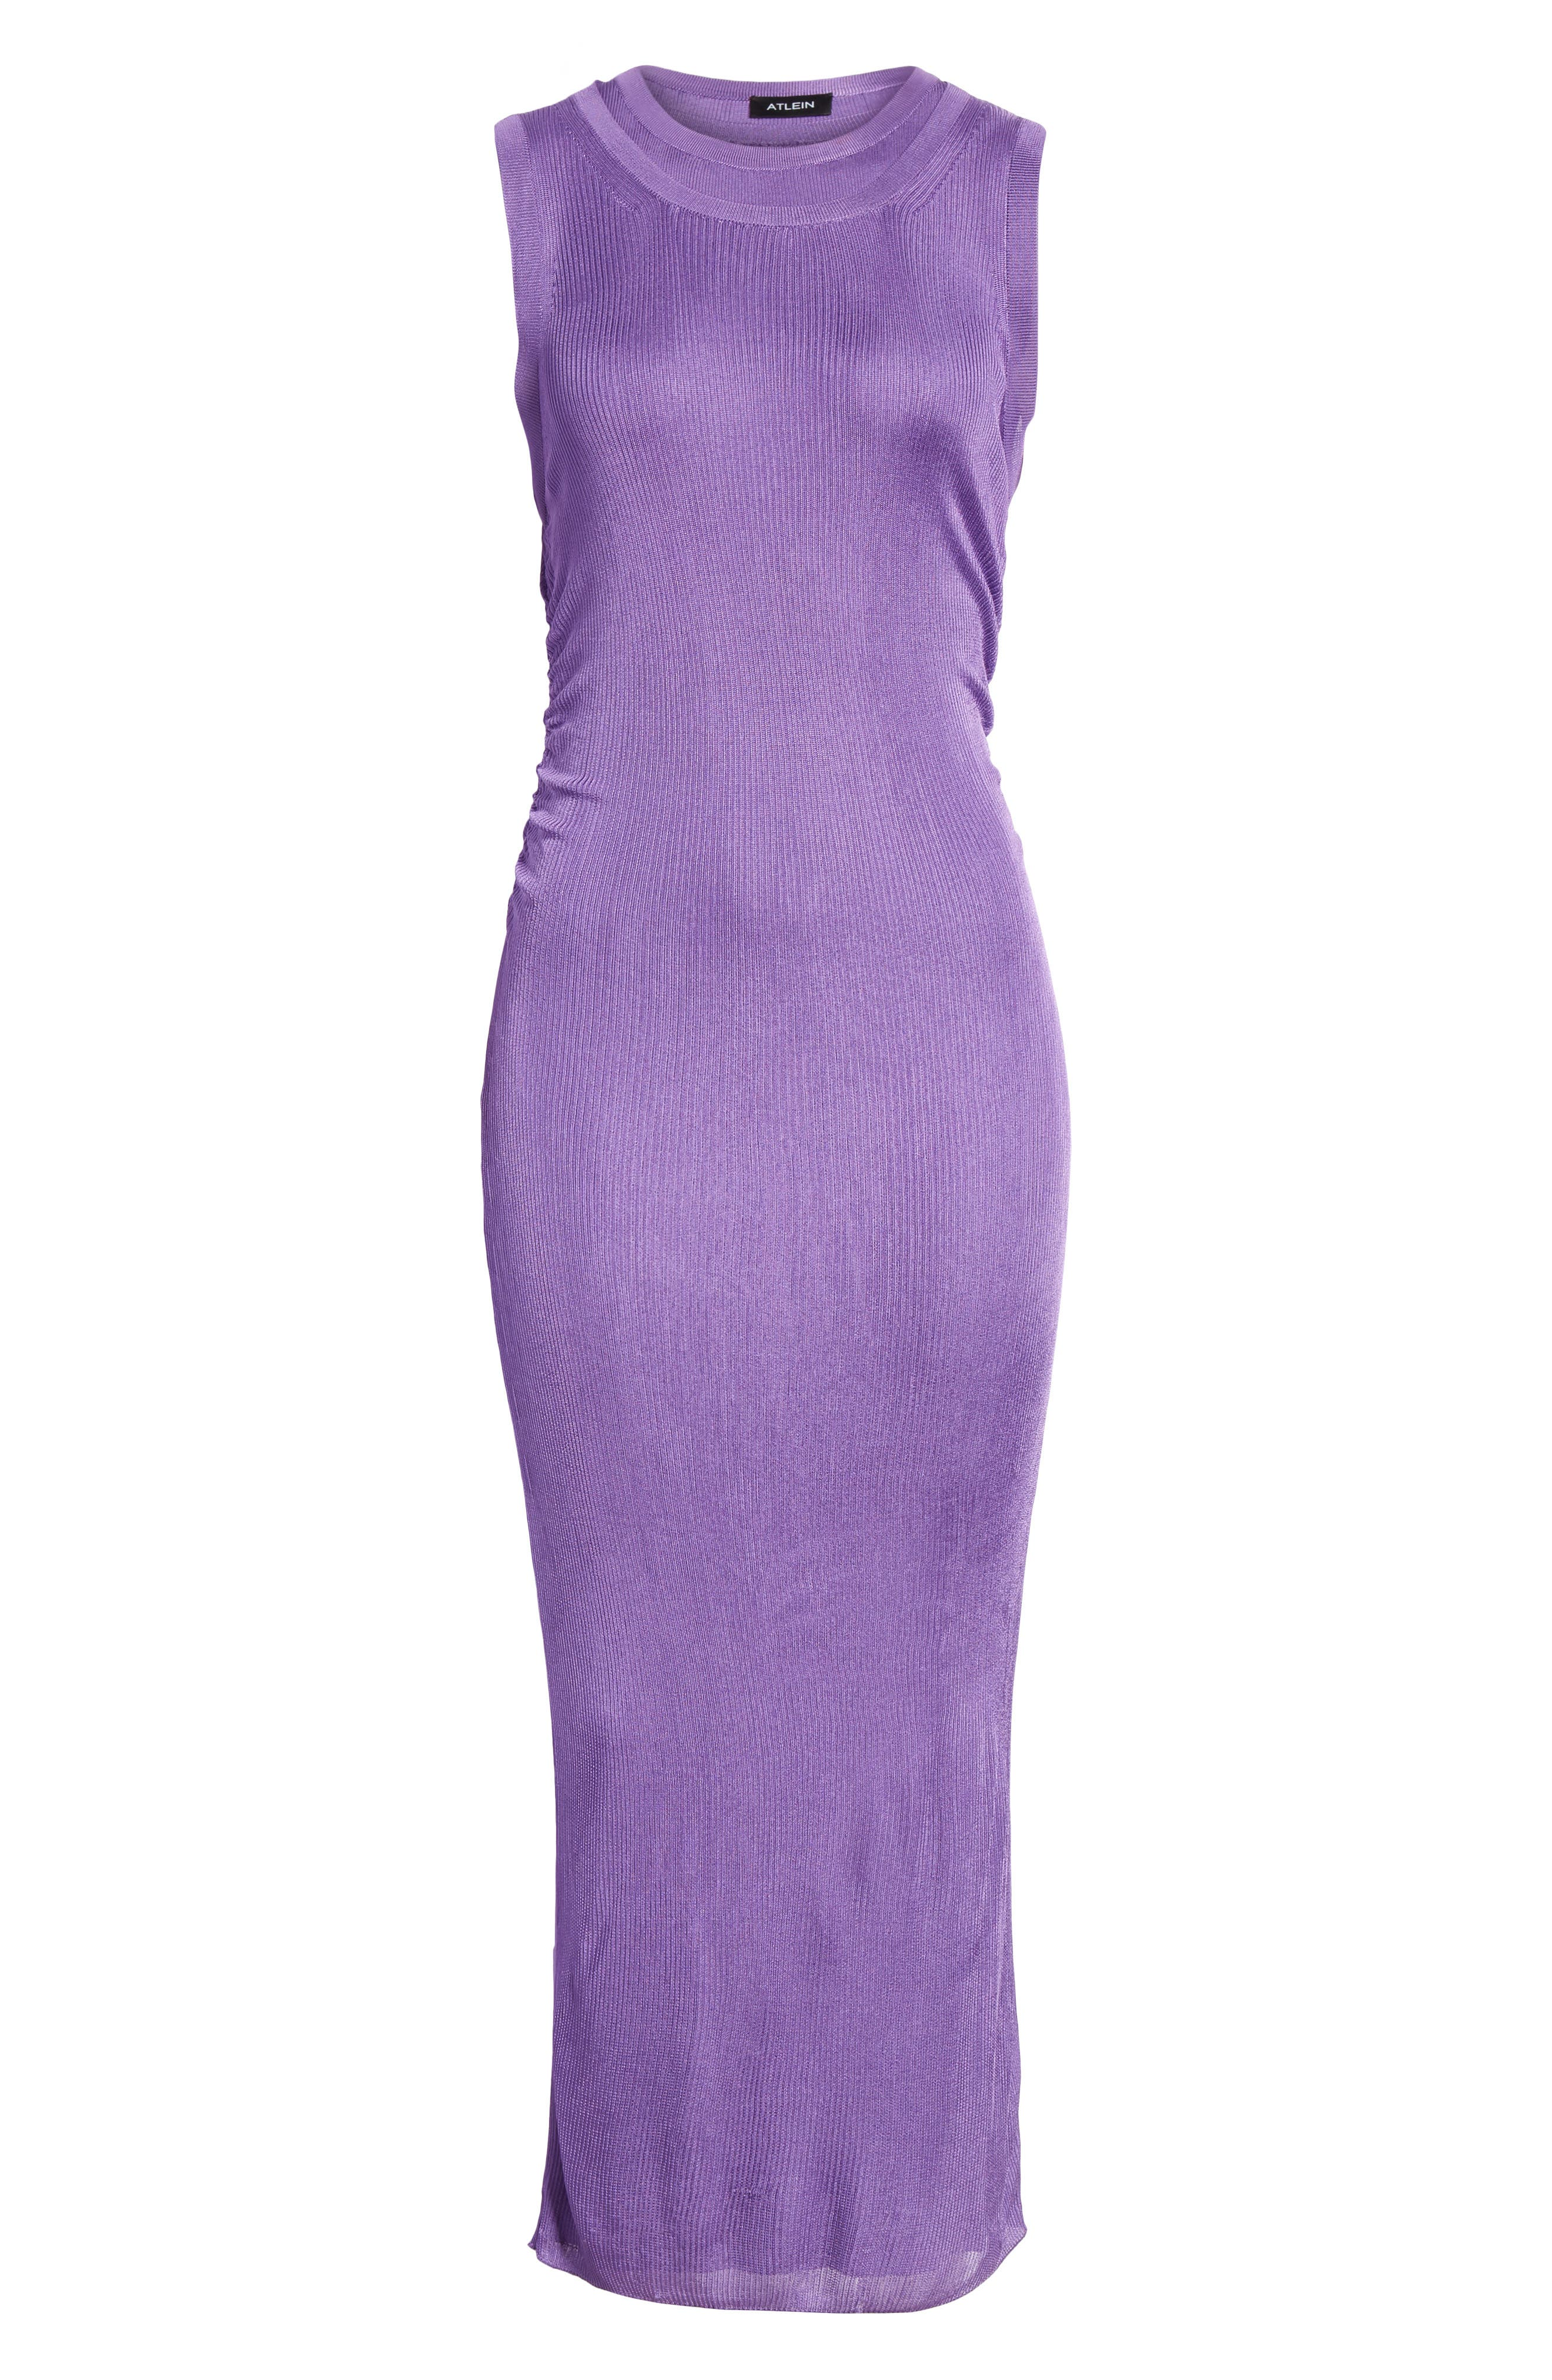 Ruched Side Layered Rib Knit Dress,                             Alternate thumbnail 7, color,                             Lilas